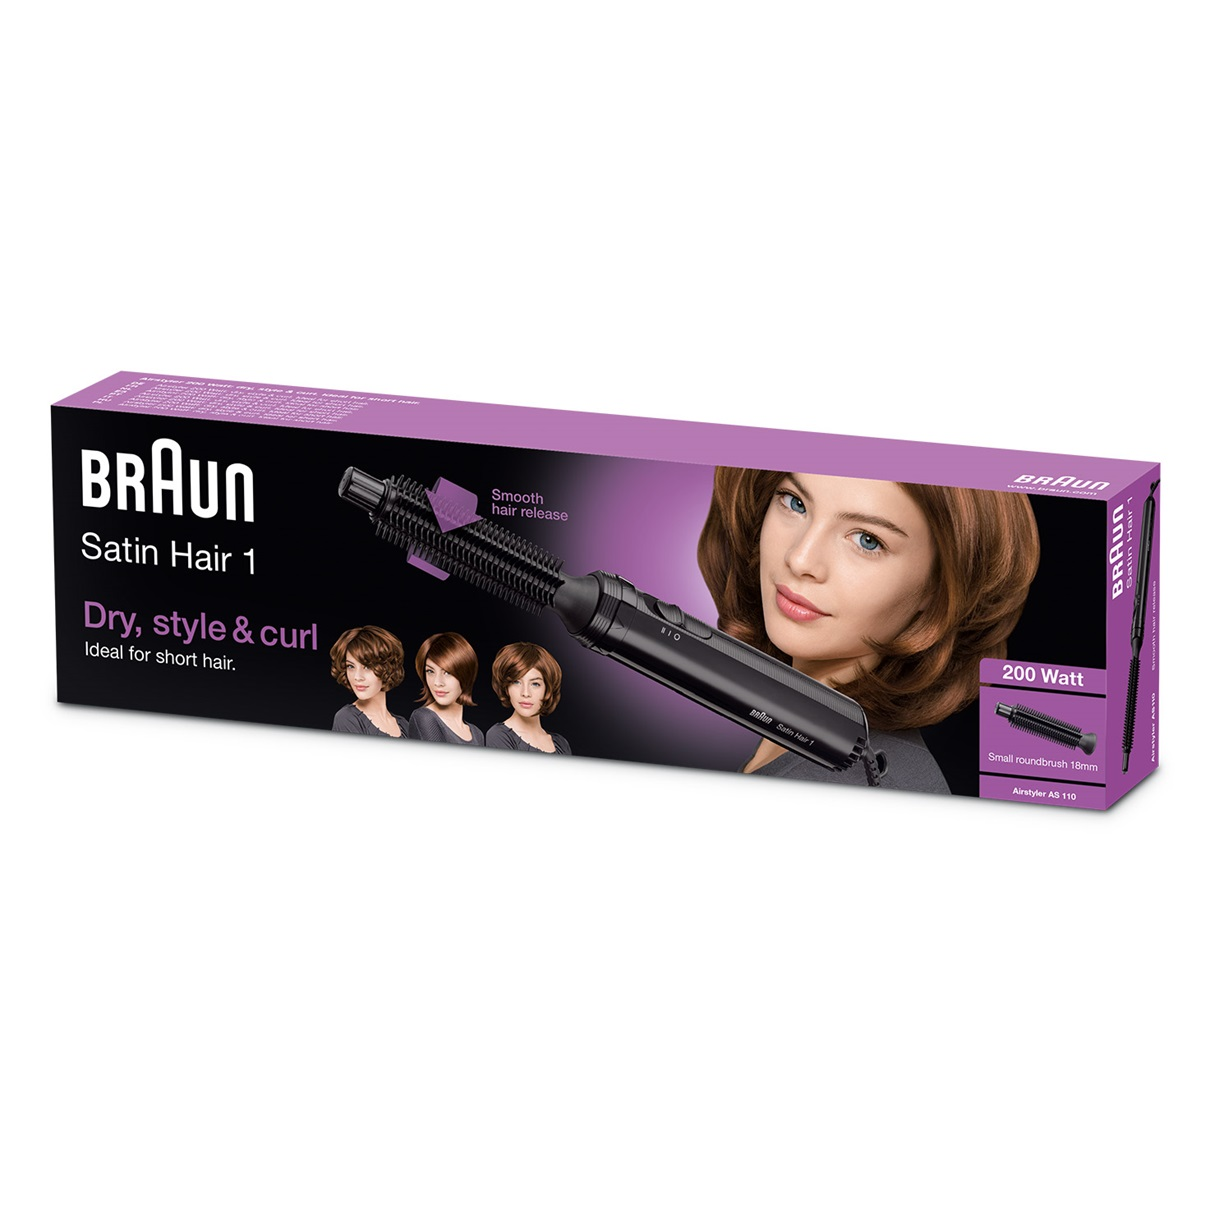 Braun Satin Hair 1 AS110 Airstyler for curls and short hair - packaging